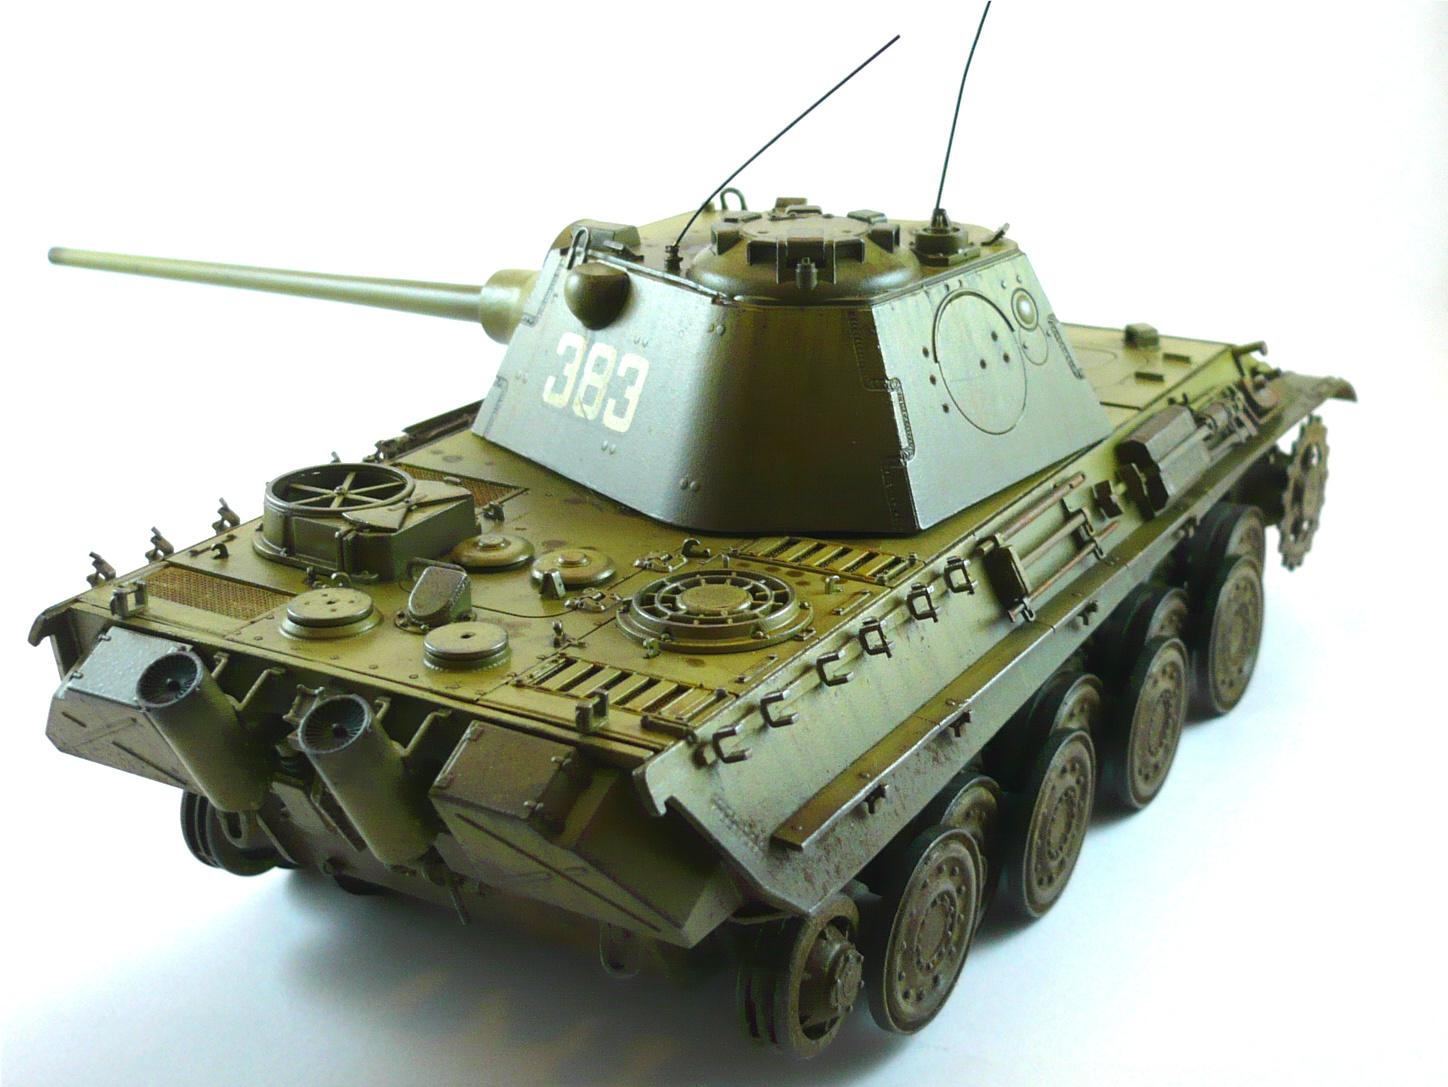 1/35 Scale, Flames Of War, Military Modeling, Military Modelling, Panther, Panther F, Tiger, World War 2